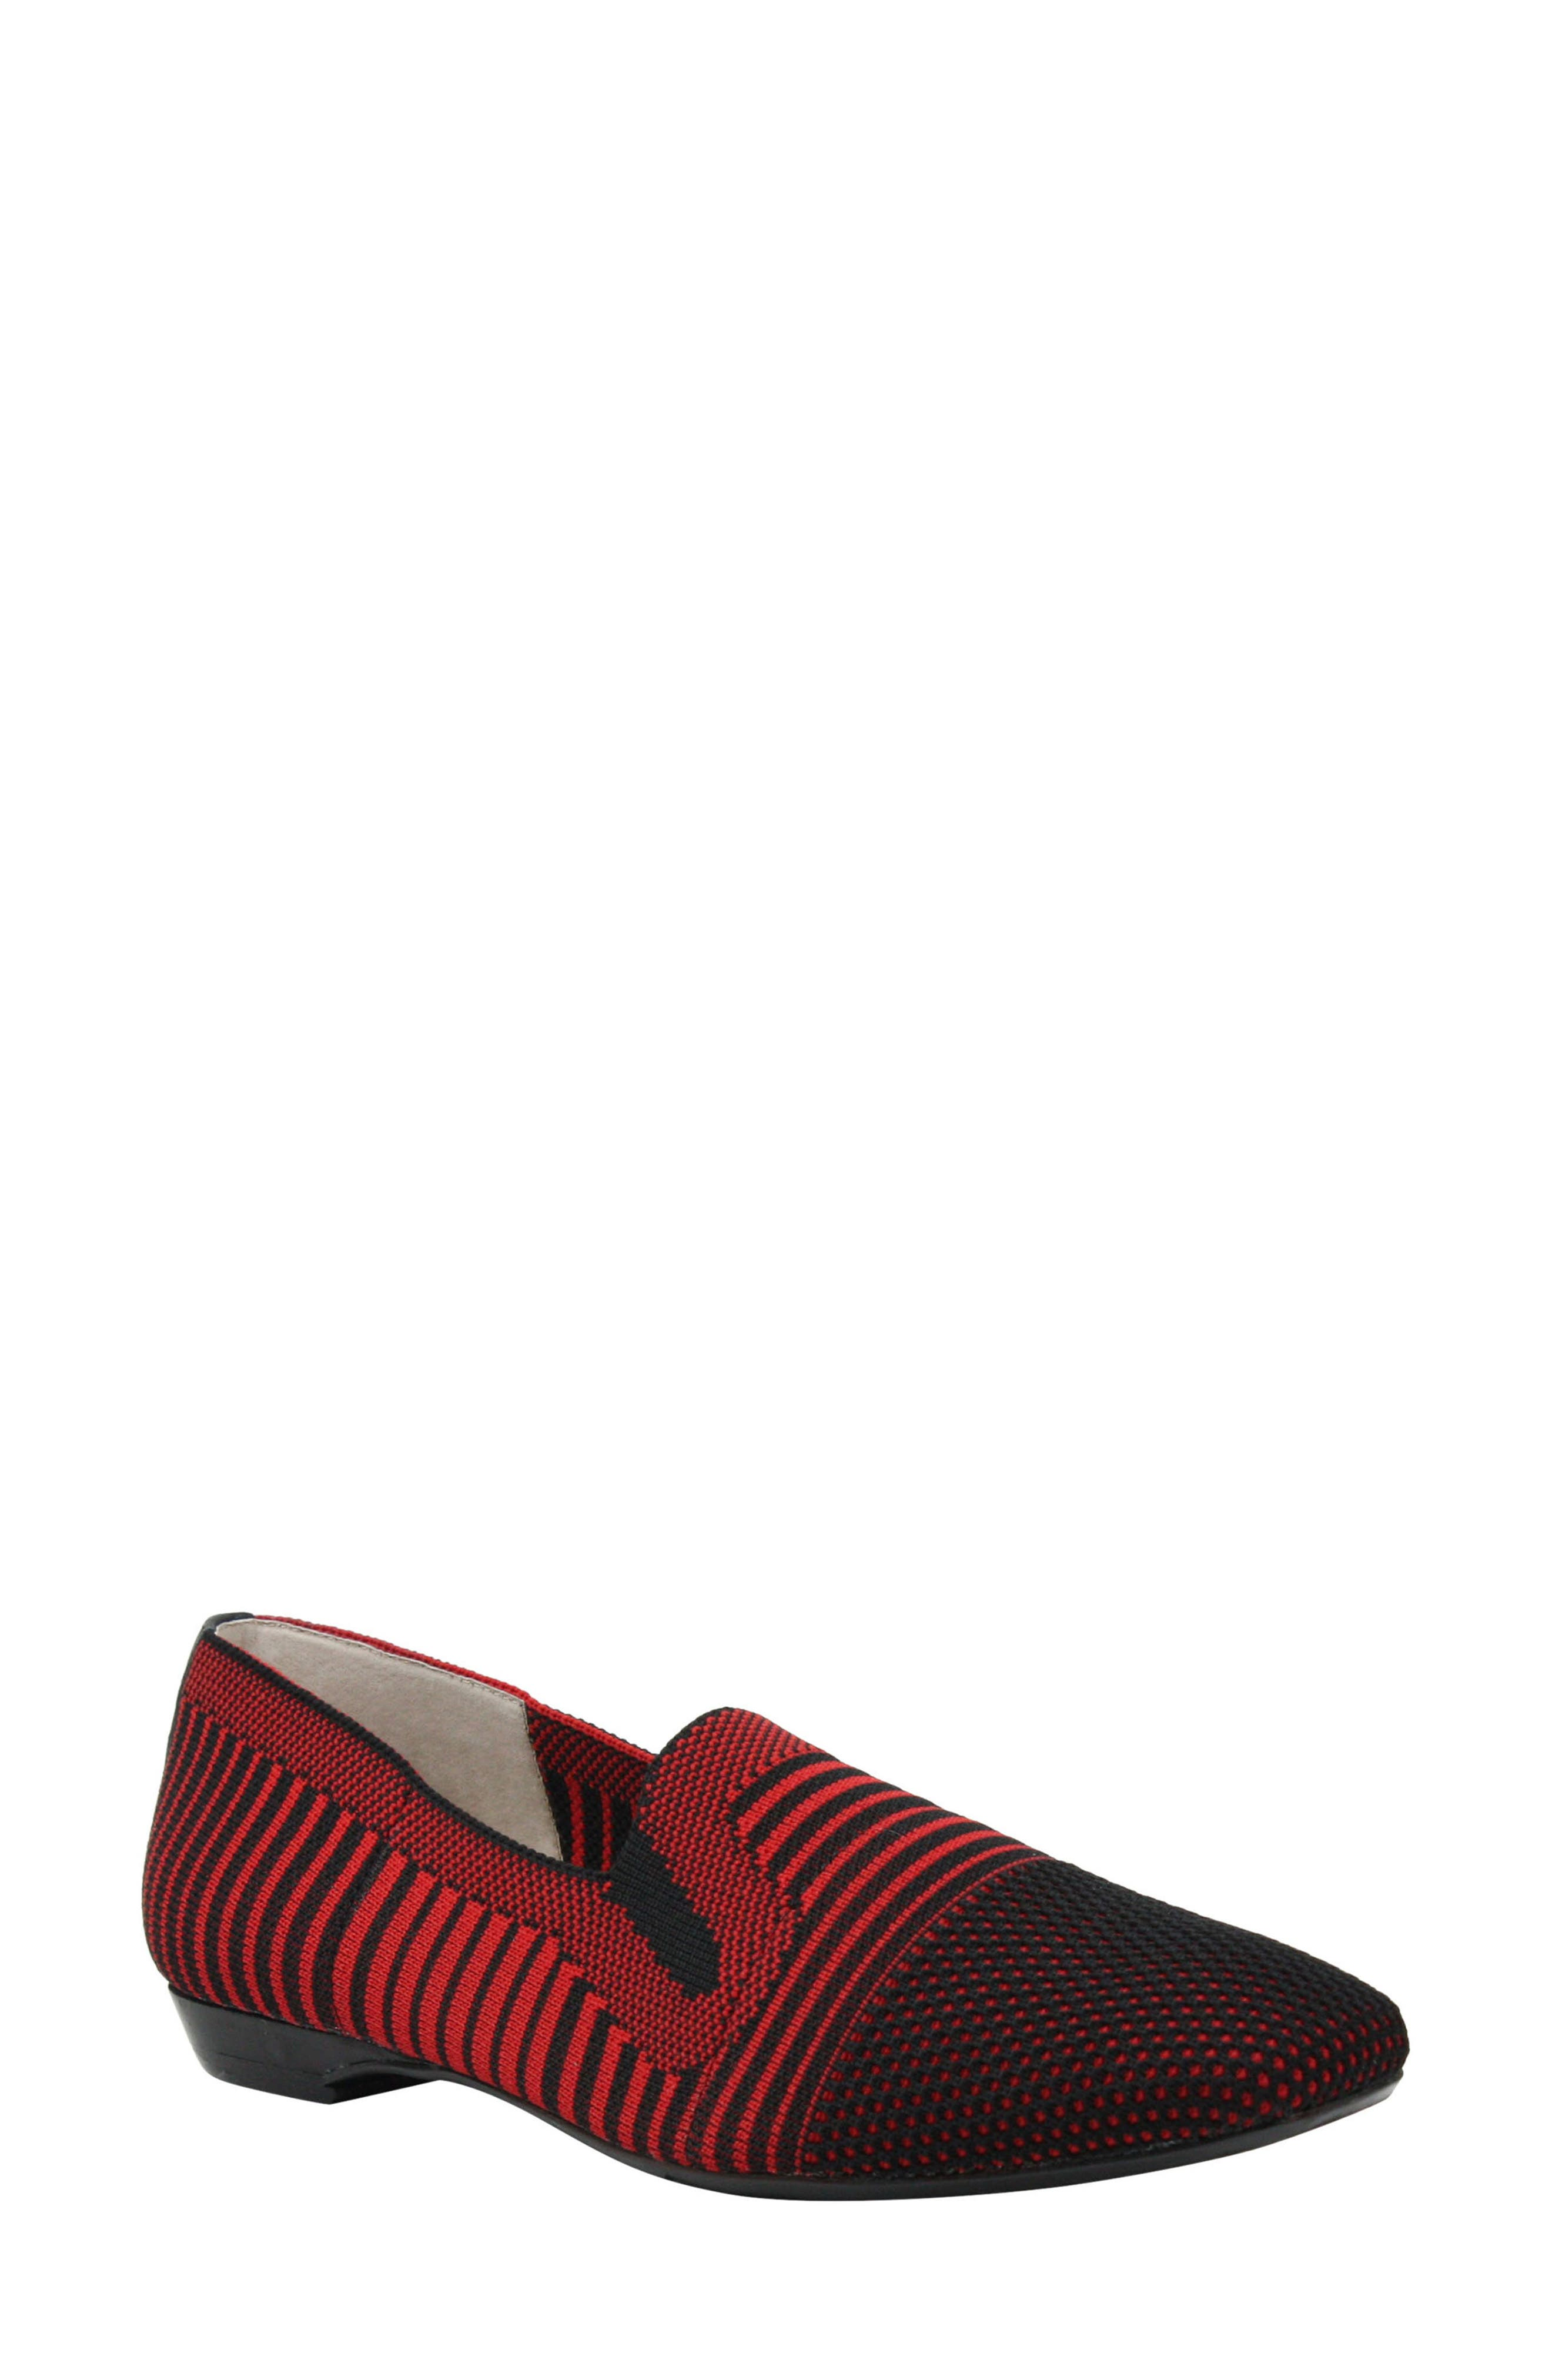 Martyne Smoking Slipper, Main, color, RED/ BLACK